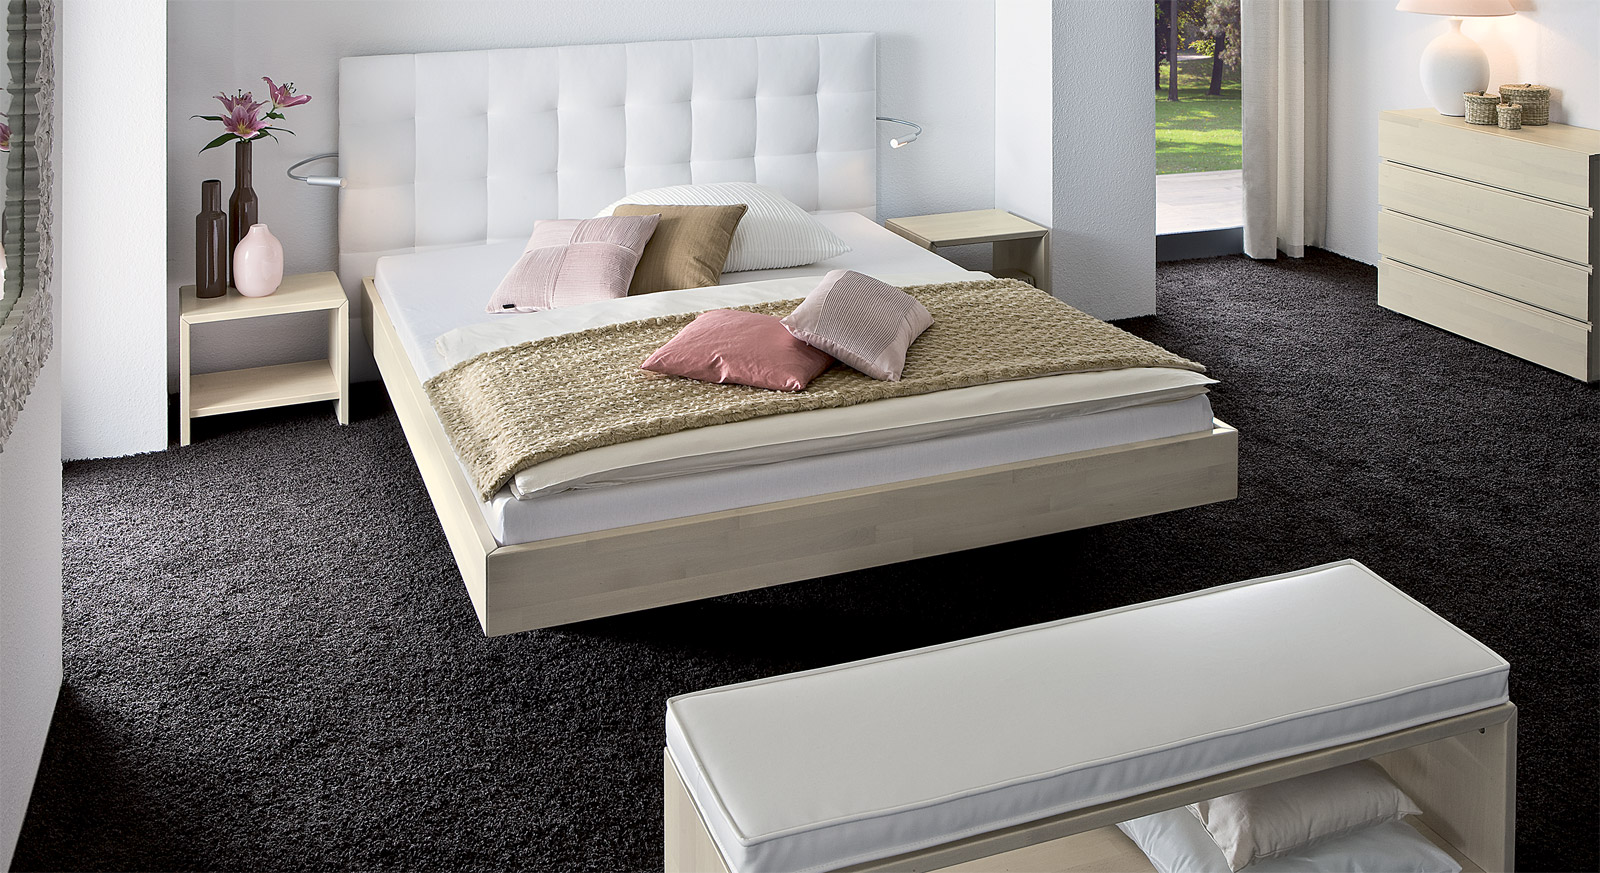 massivholzbett mit wandpaneel als hohes kopfteil bianco deluxe. Black Bedroom Furniture Sets. Home Design Ideas